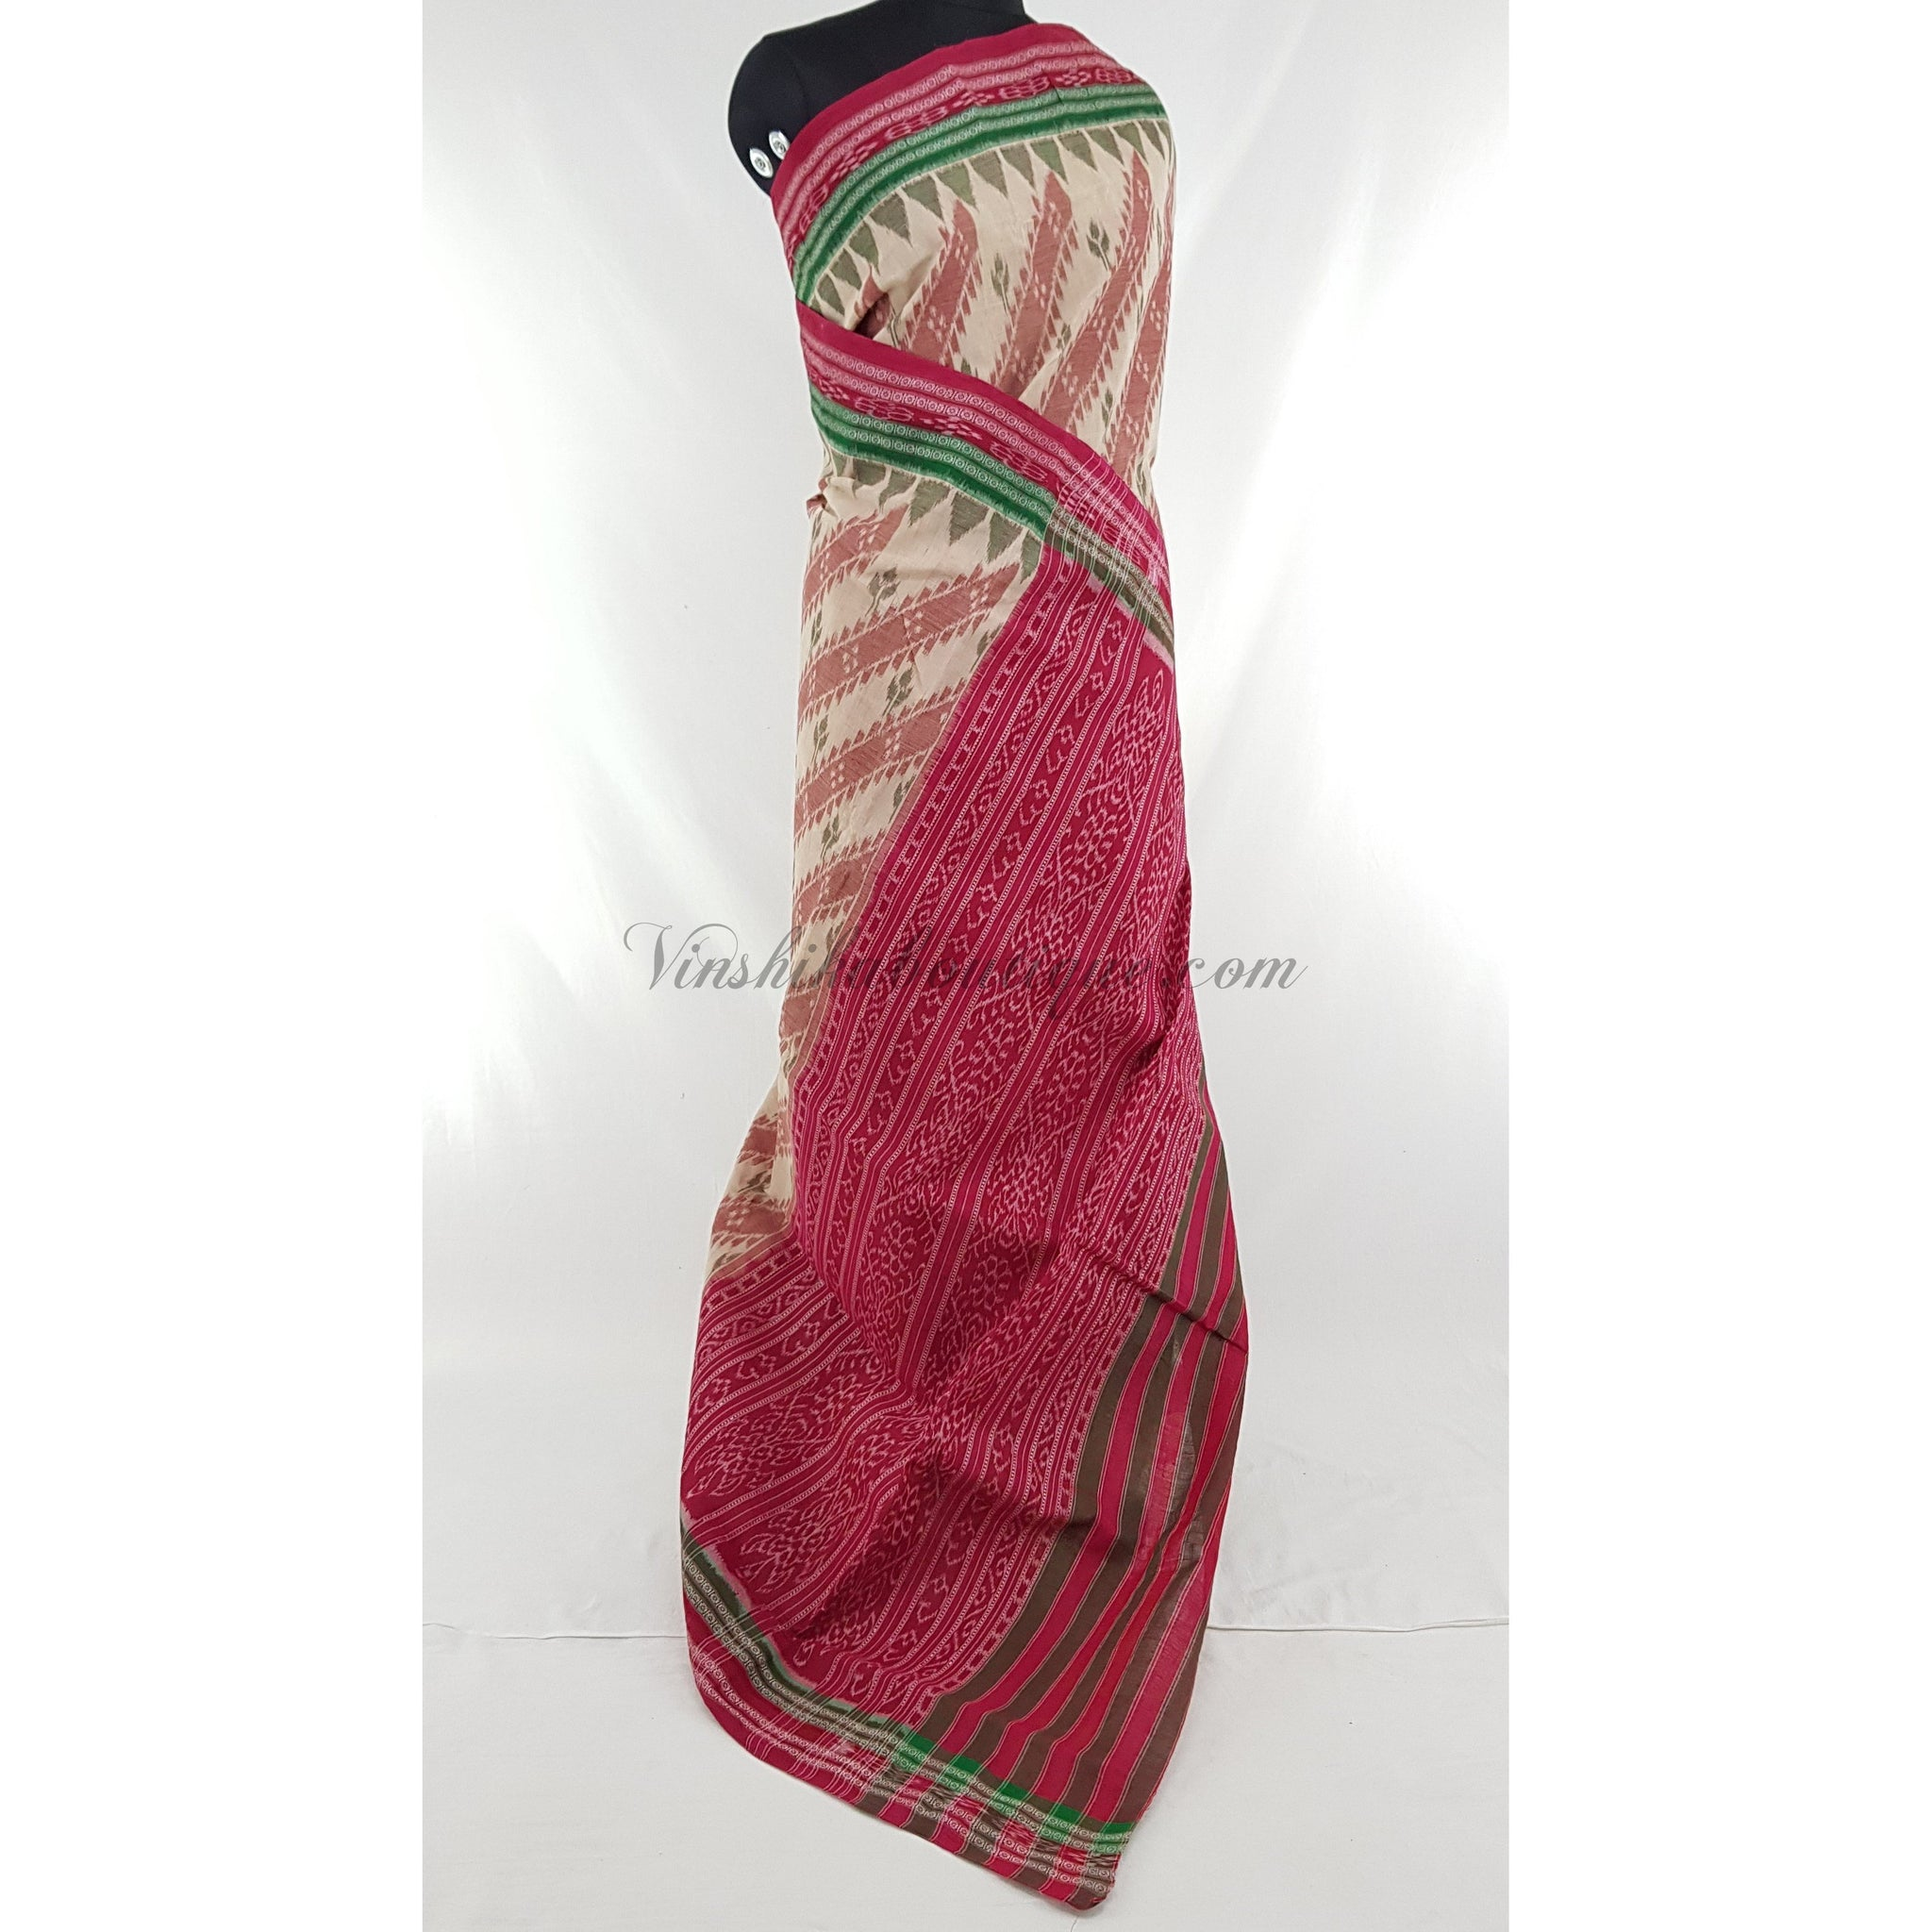 Handloom sambalpuri ikat pure cotton saree, no blouse. - Vinshika